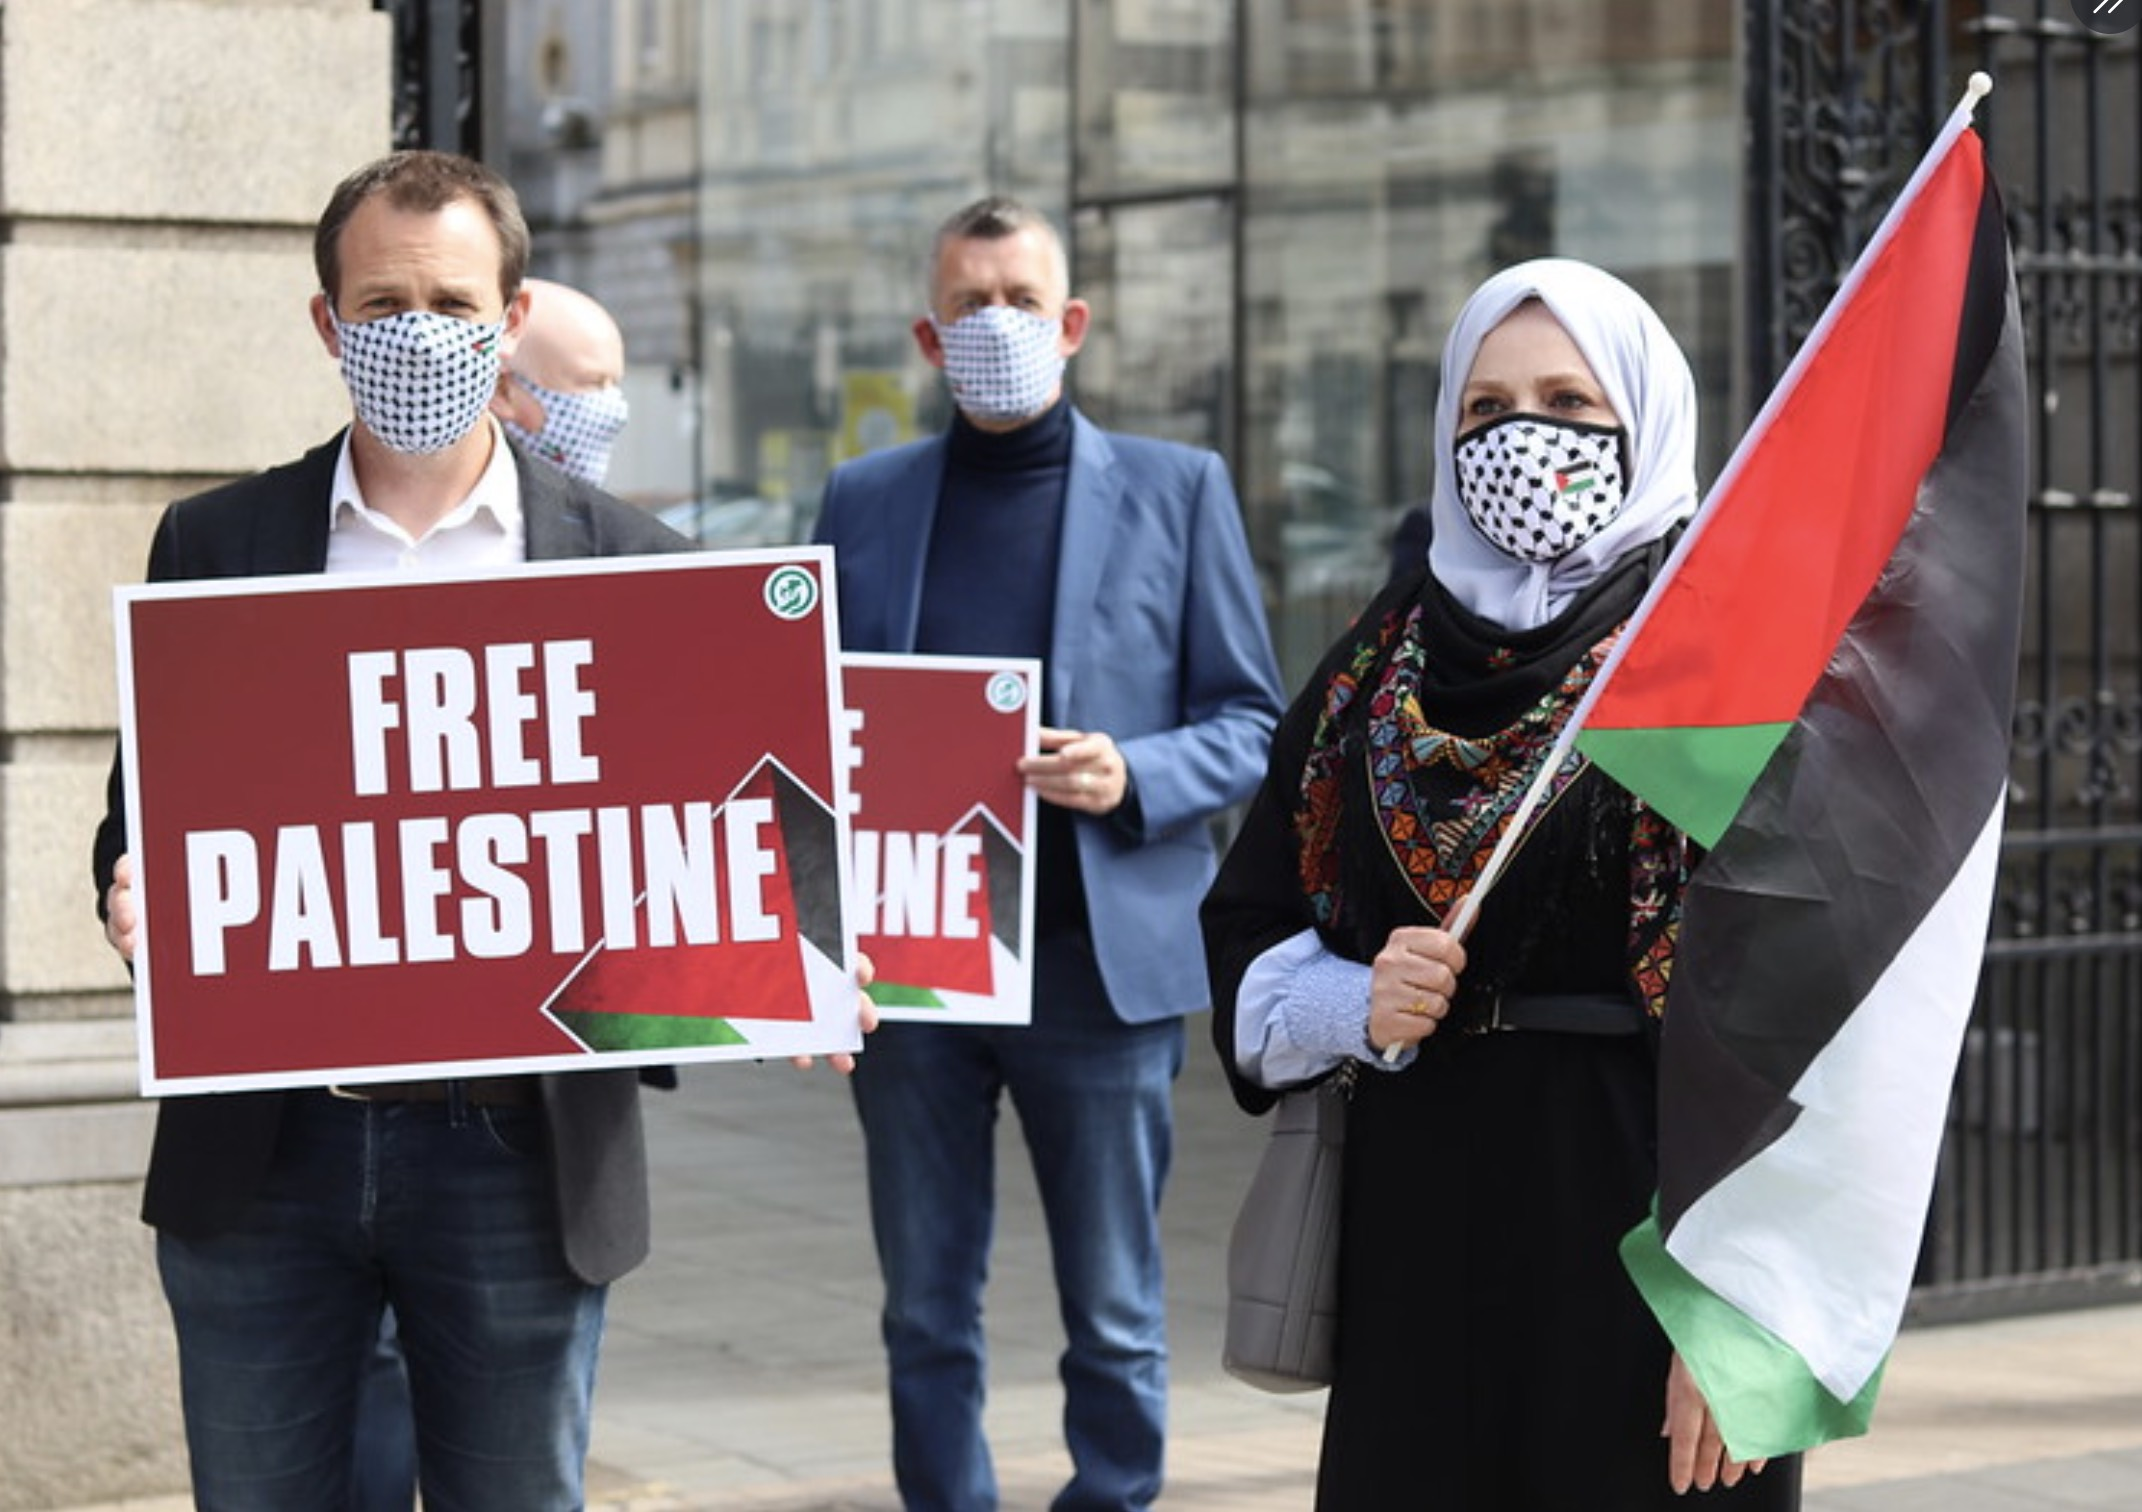 """People hold palestinian flags and """"free Palestine"""" signs Irish government shows solidarity with Palestinians in a historic motion to condemn Israeli settlement activity as defect annexation. photo credited to @sinnfeinireland"""